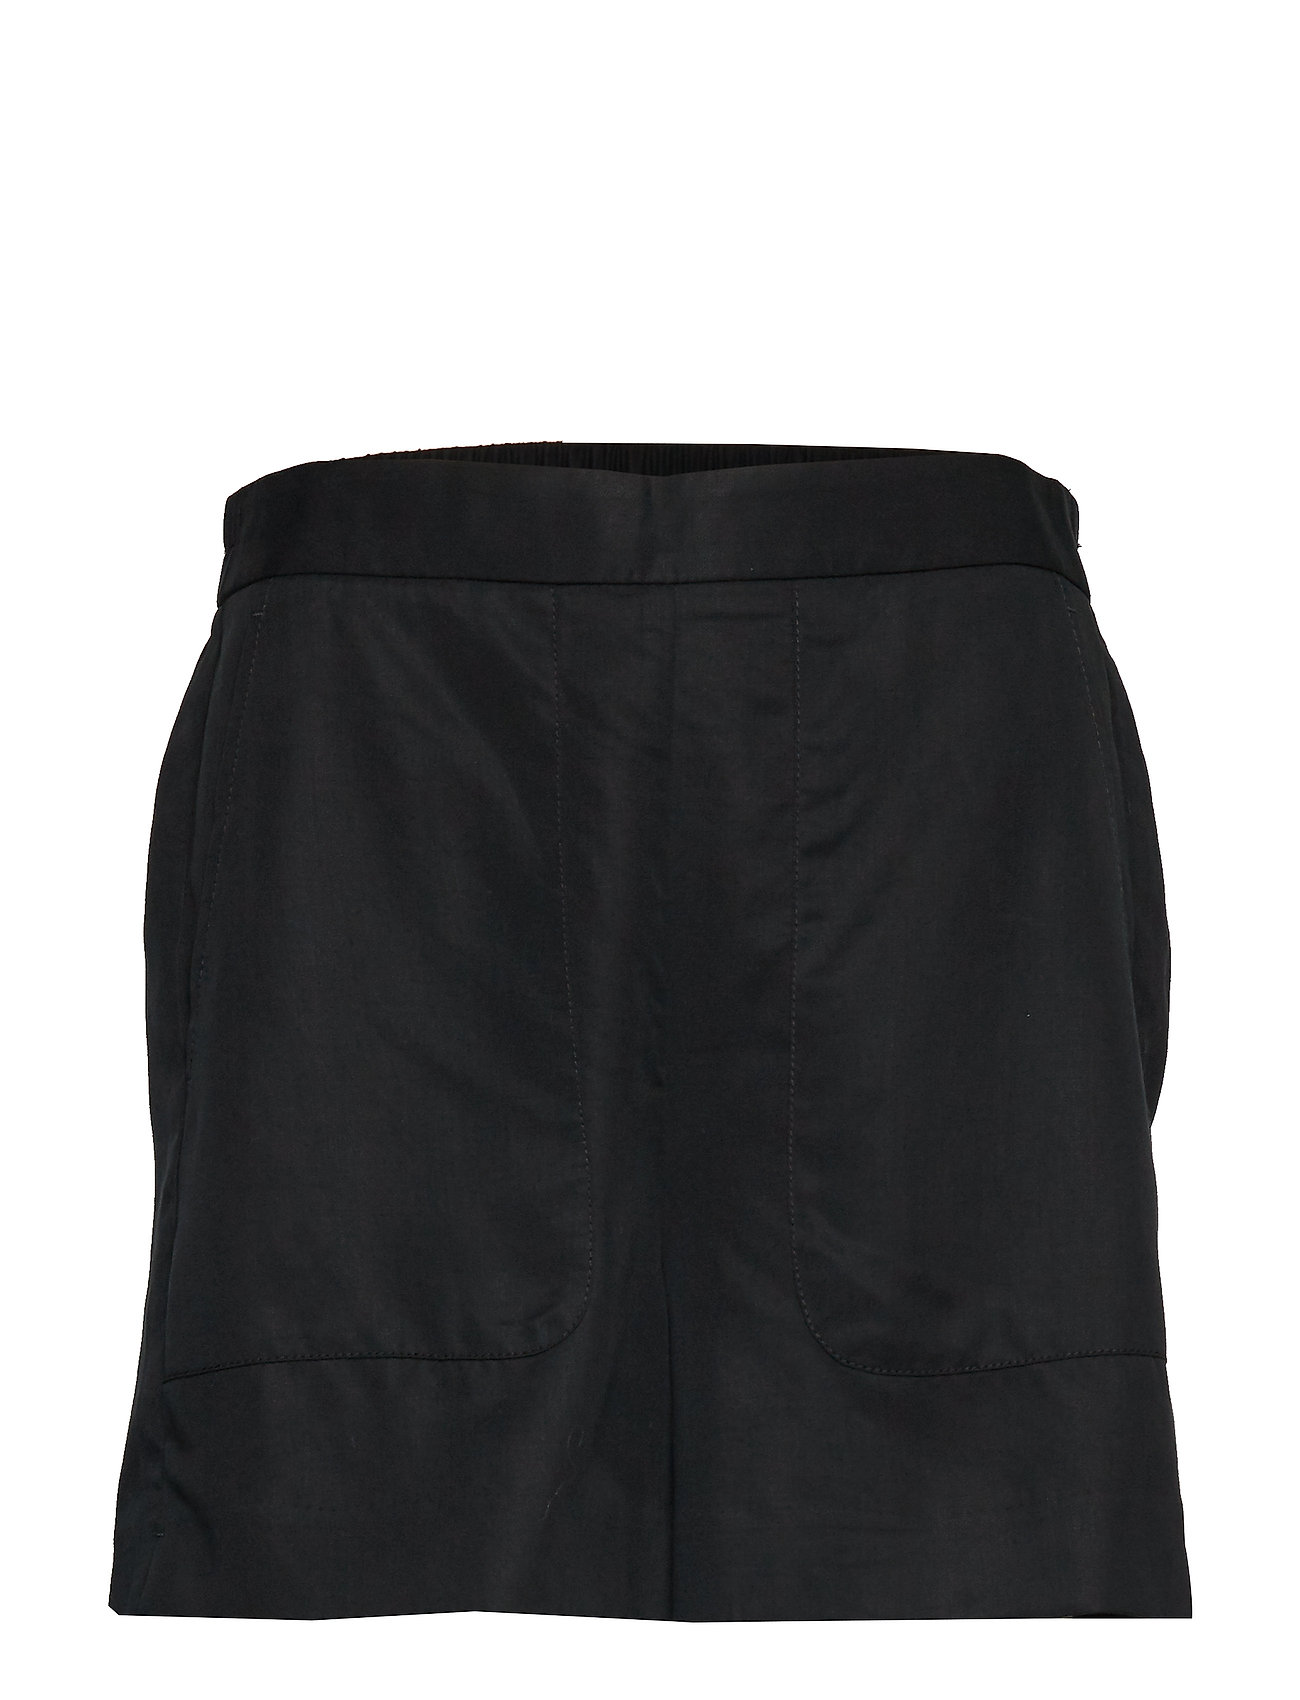 Banana Republic HR SOFT PULL ON SHORT TENCEL - BLACK